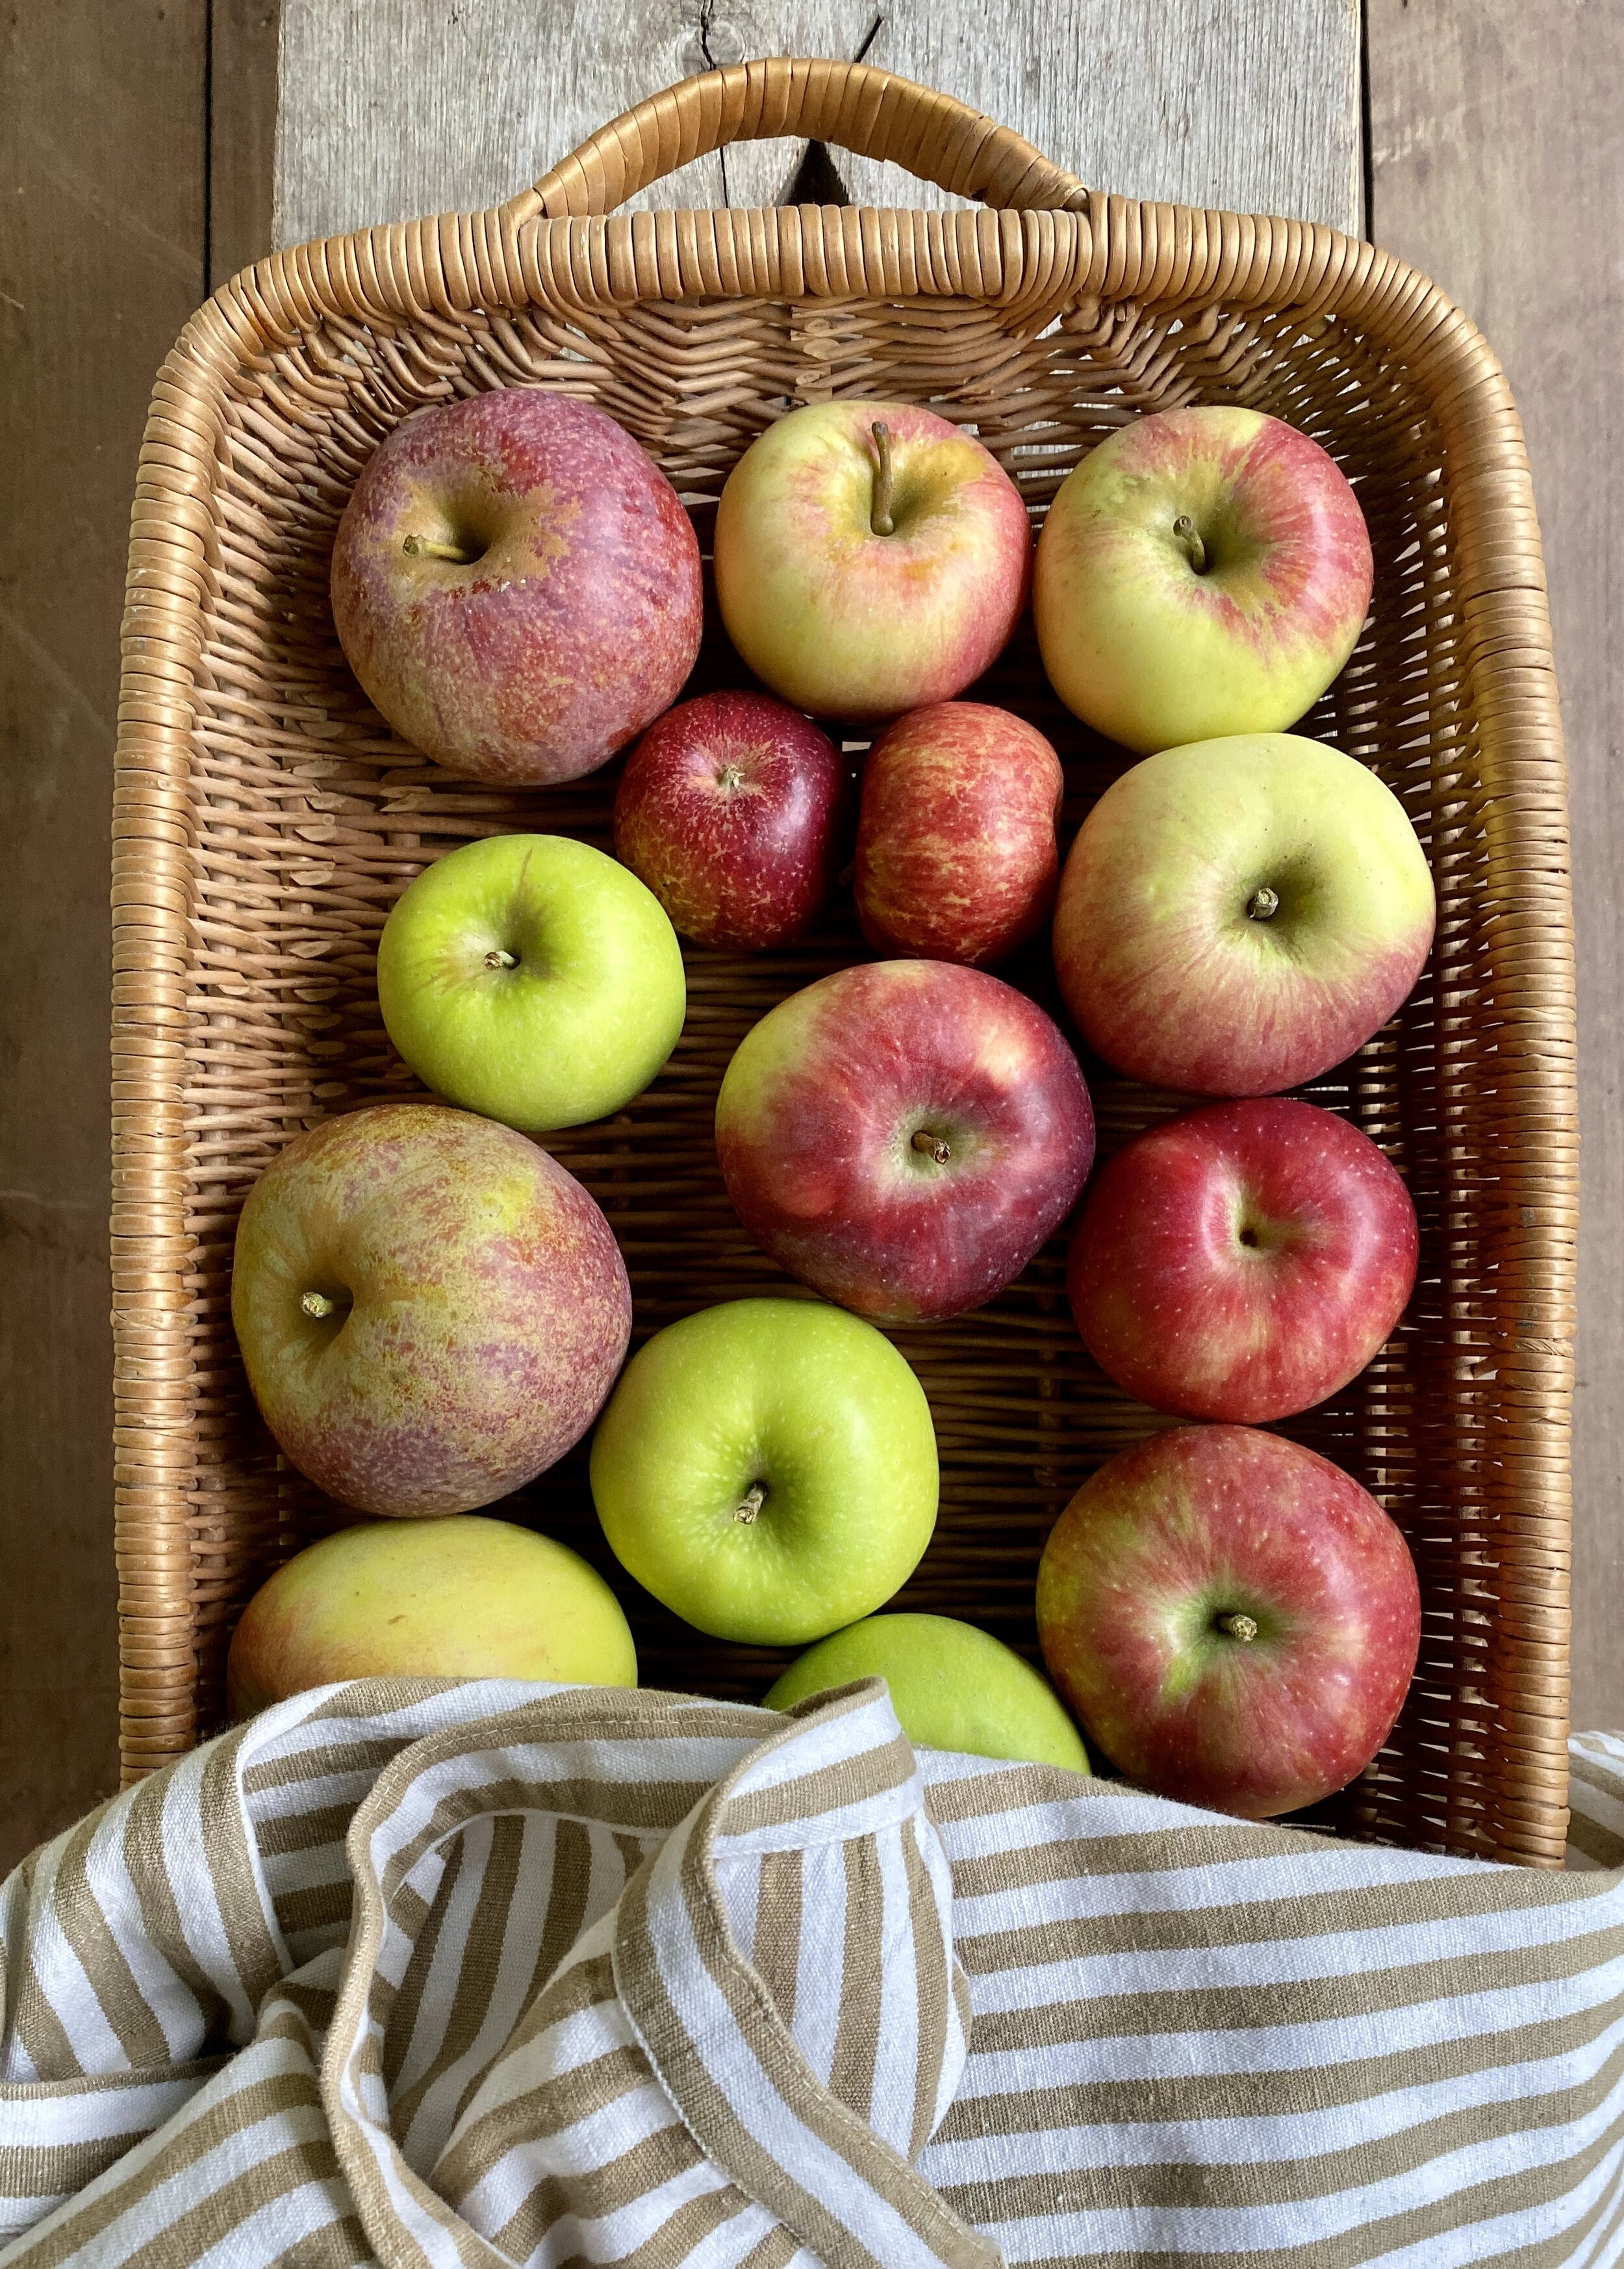 Shelburne Farm heirloom apple selection is very exciting. Shown above: Blue Pearmain, Firecrackers, Kidd's Orange Red, Grimes Golden, Bonkers, and Chenago Strawberry.